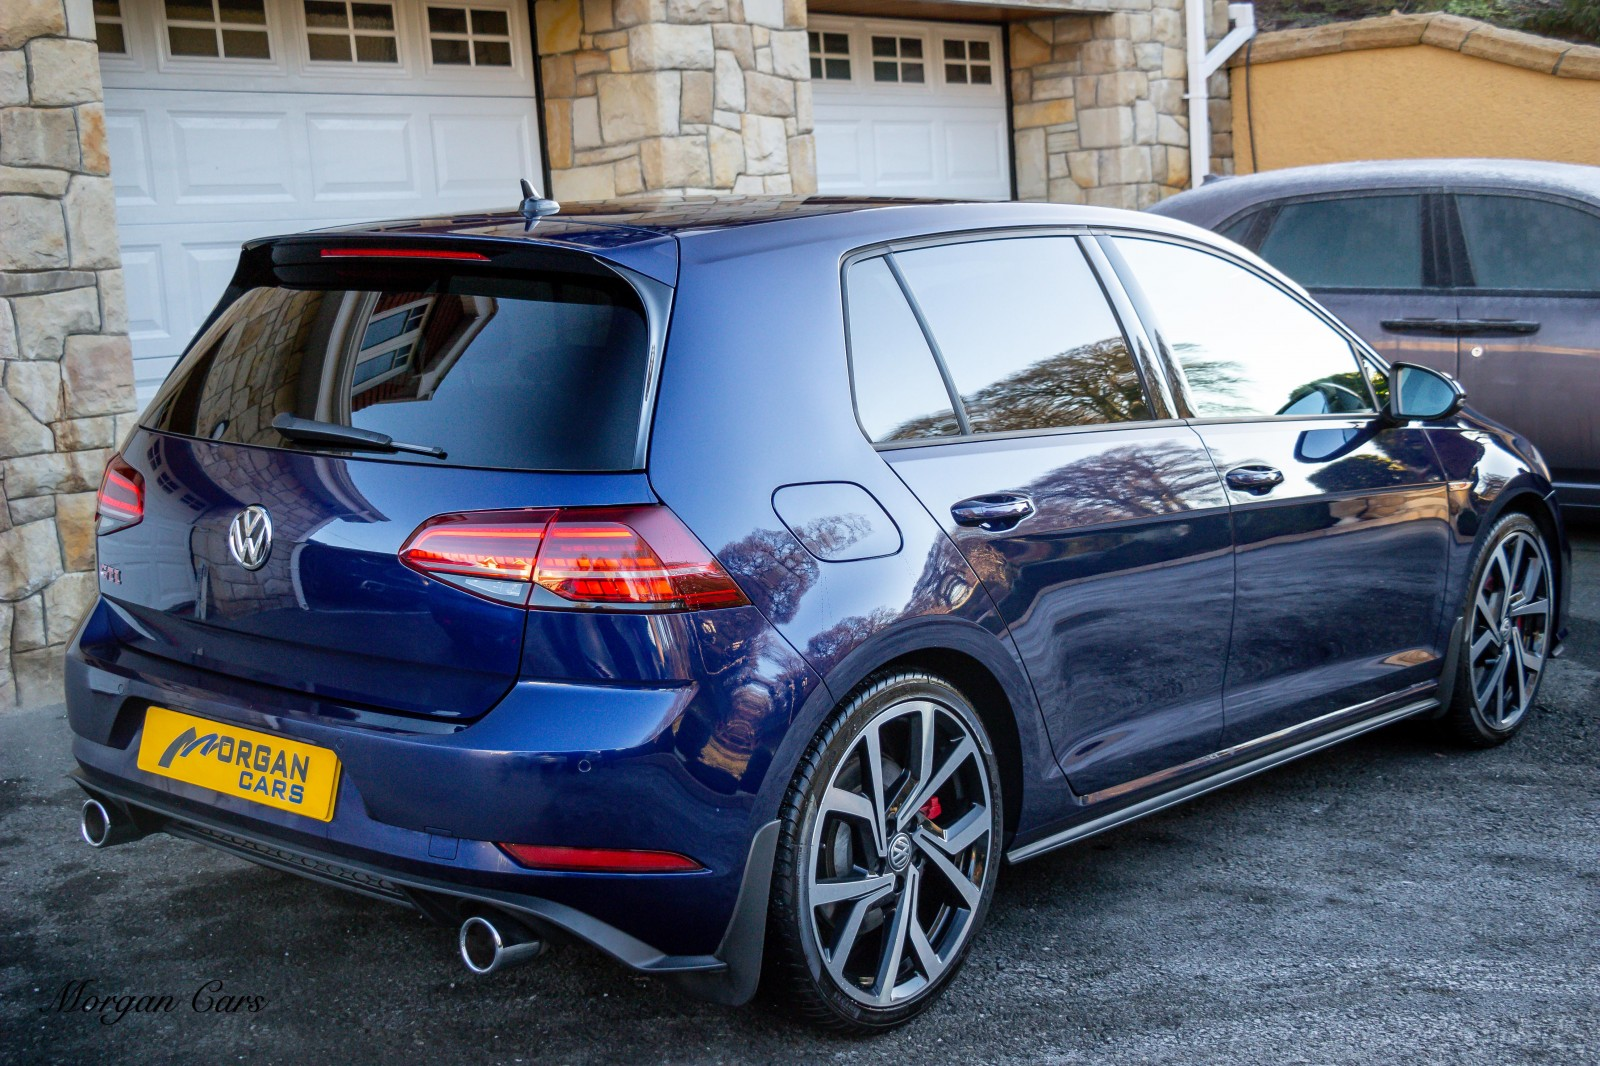 2019 Volkswagen Golf GTI PERFORMANCE TSI DSG Petrol Semi Auto – Morgan Cars 9 Mound Road, Warrenpoint, Newry BT34 3LW, UK full